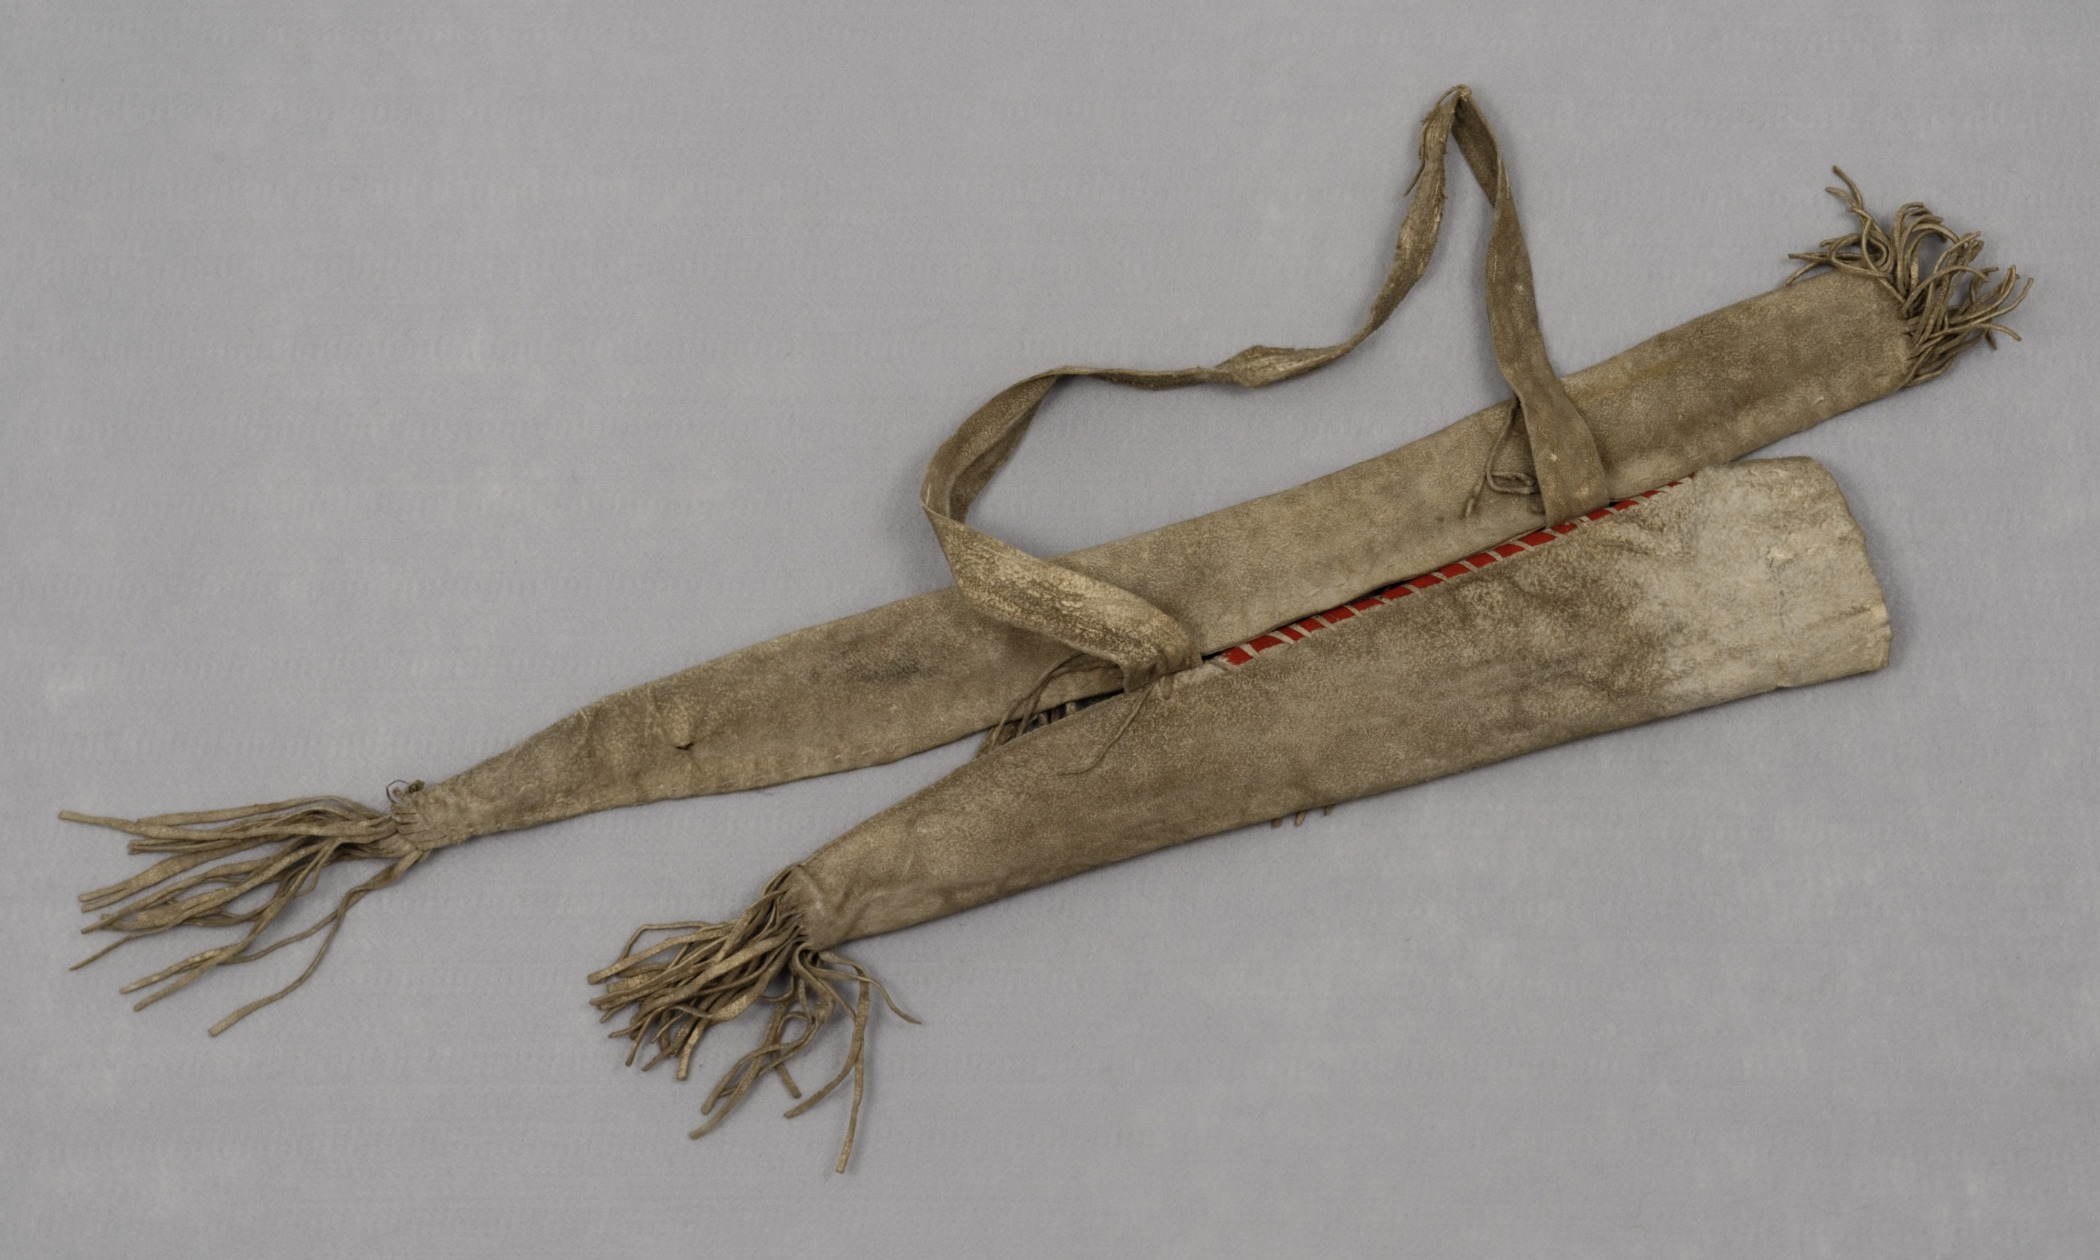 Sioux,bow case and quiver, 1877–79. Leather, red wool cloth, and rawhide. Hood Museum of Art, Dartmouth College: Gift of Edward W. Bush, Jr., Class of 1945, Tuck 1947; 47.12.10804.